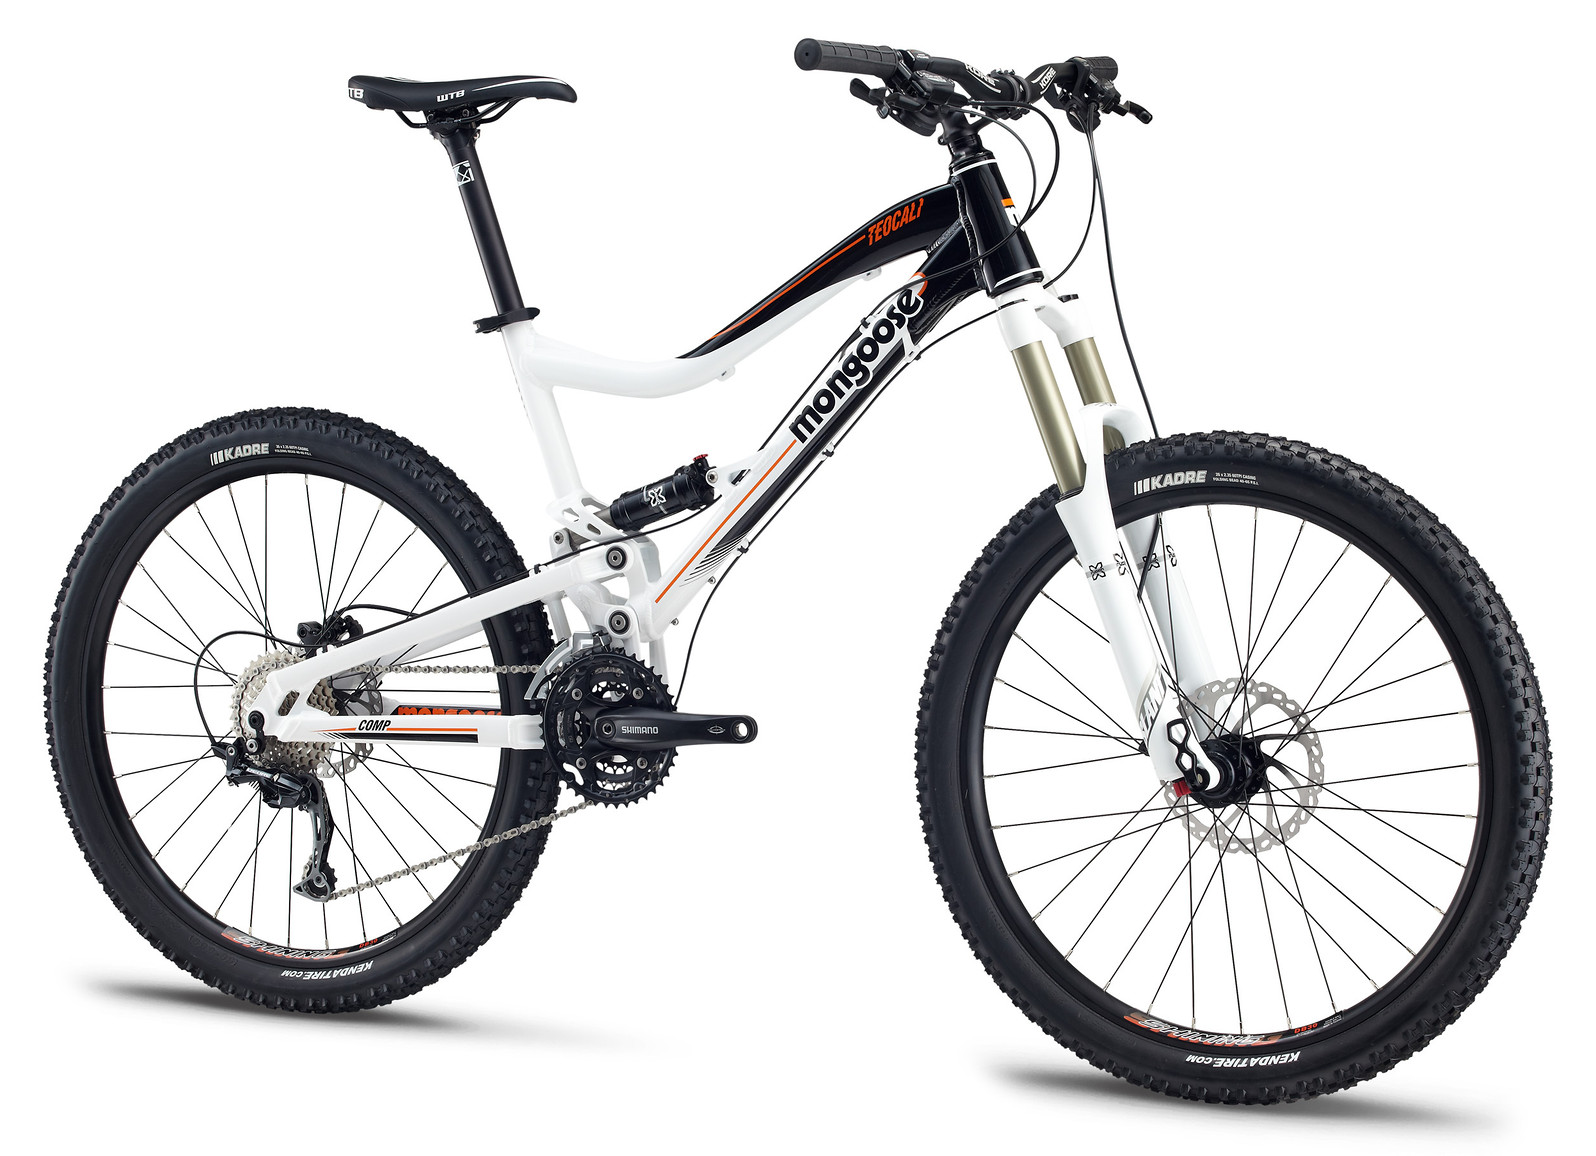 2014 Mongoose Teocali Comp Bike